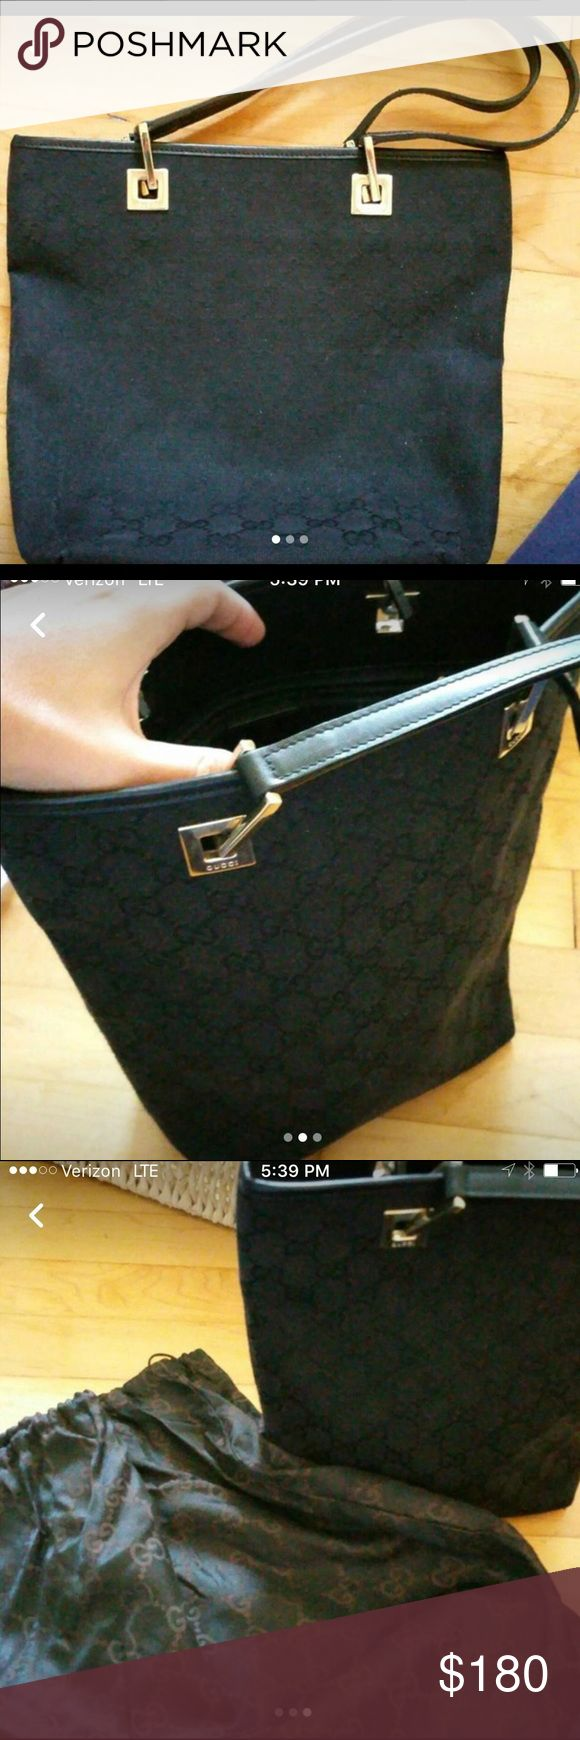 """Authentic black Gucci bucket bag Barely used. Dimensions are 14"""" tall (not including the straps up) sfpf home price does not include shipping Gucci Bags Shoulder Bags"""